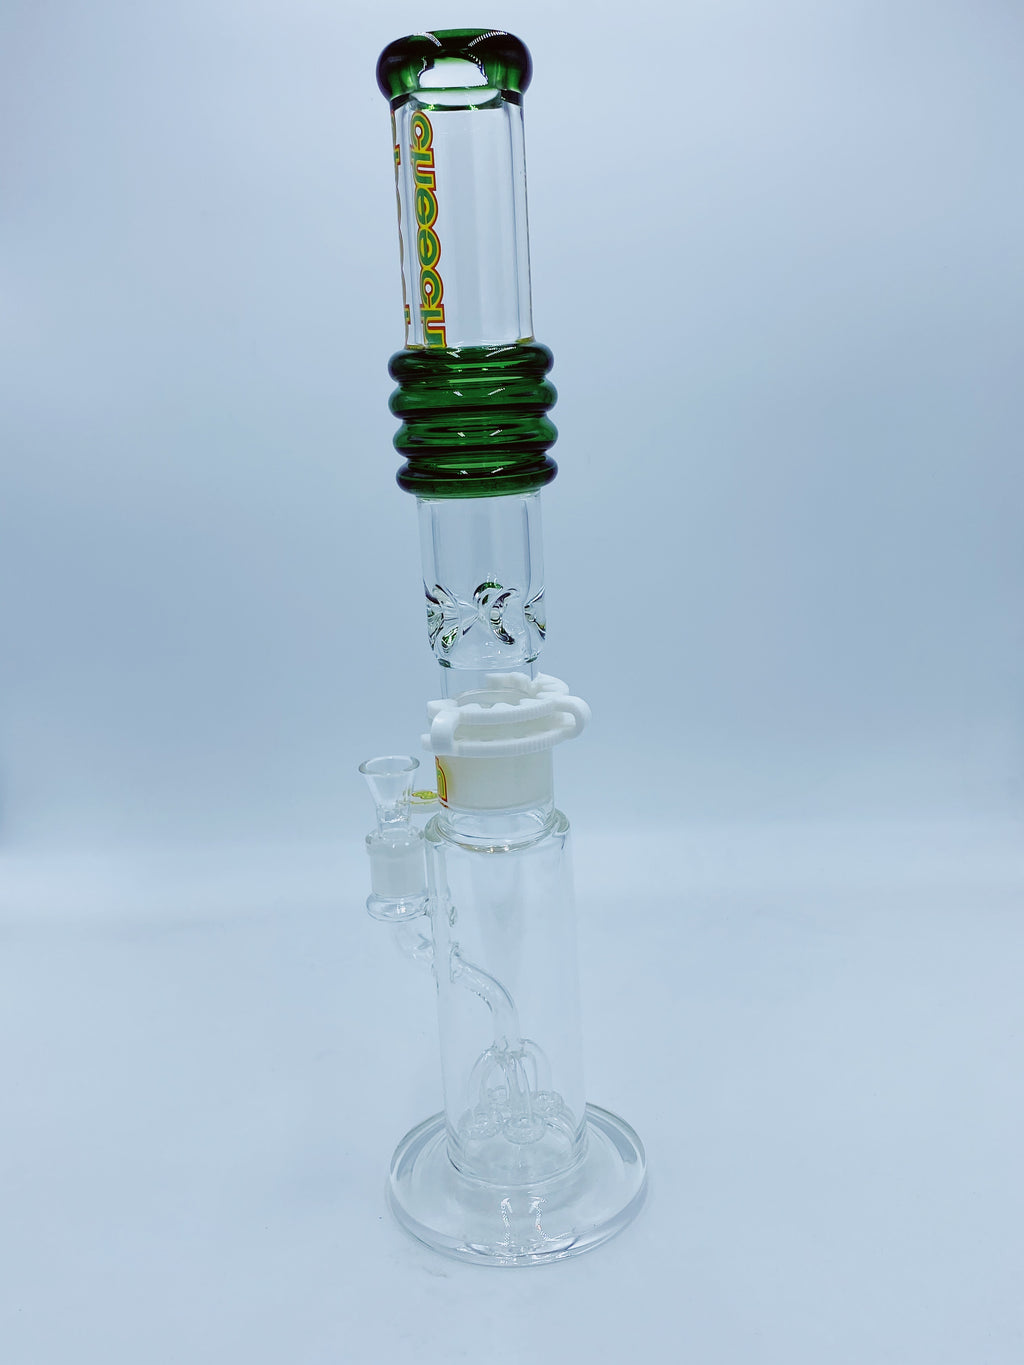 CHEECH GLASS QUAD SHOWERHEAD BUILD A BONG - Smoke Country - Land of the artistic glass blown bongs